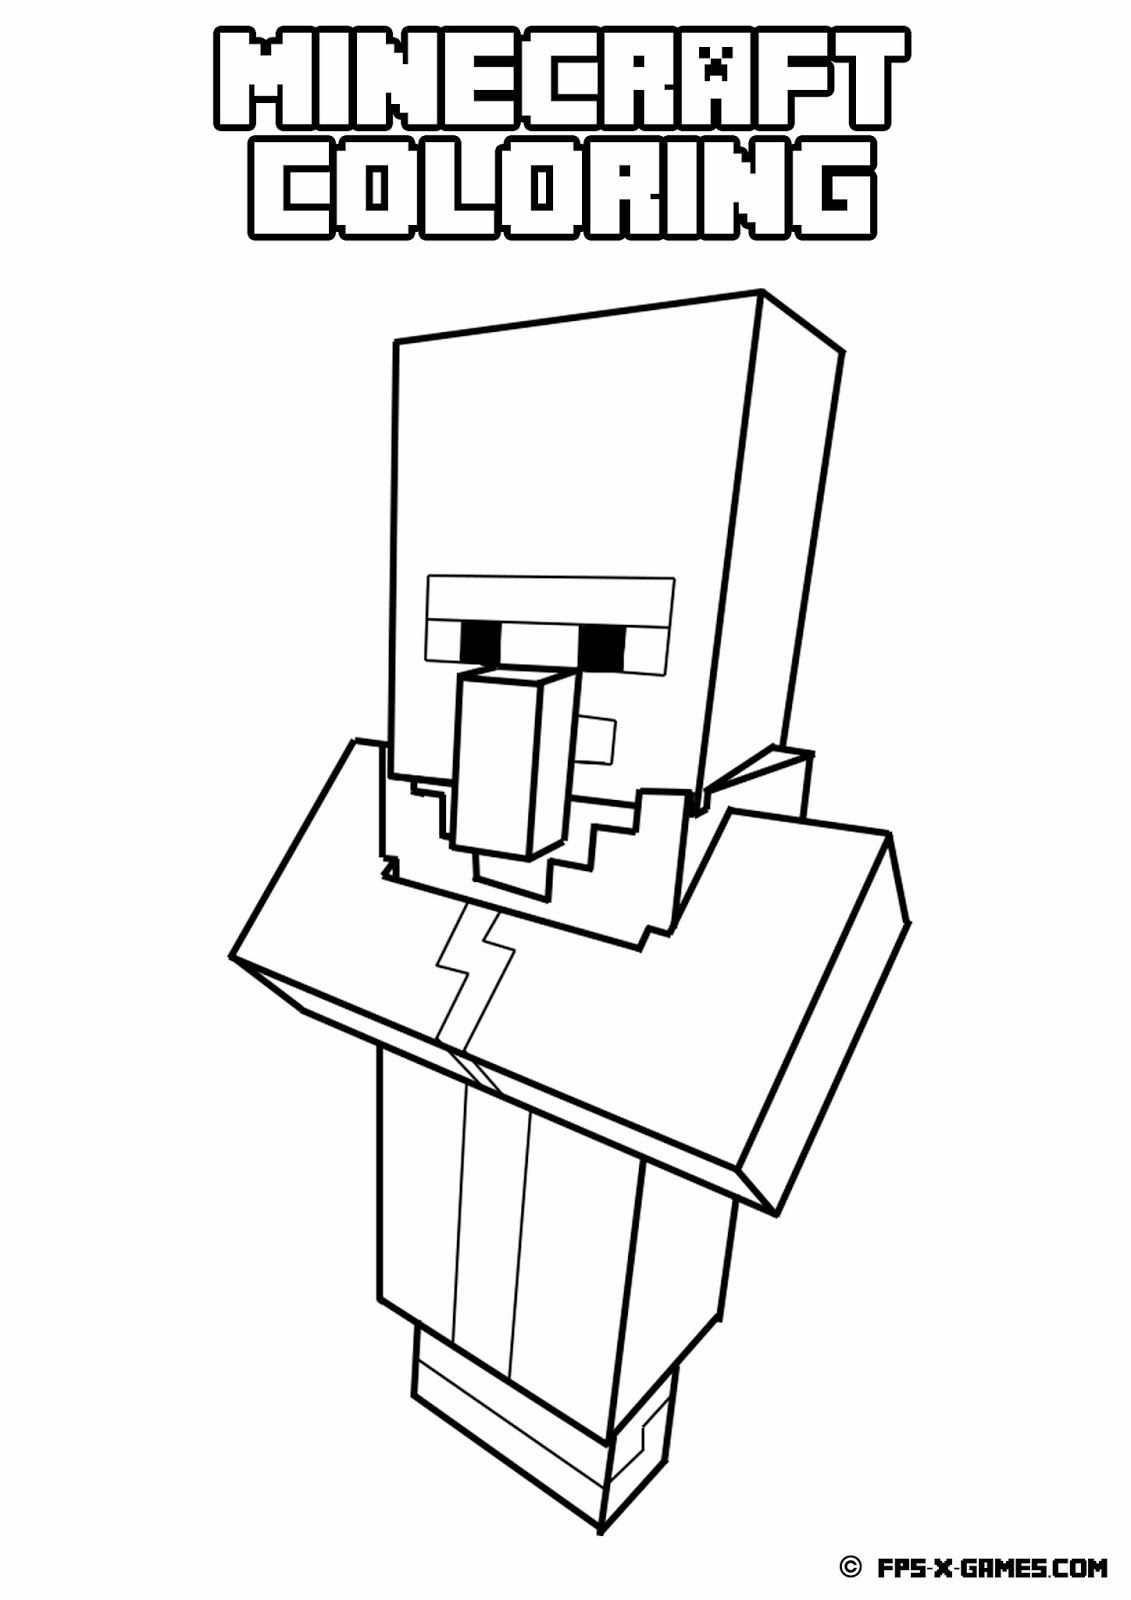 Minecraft Coloring Villager Jpg 1131 1600 Minecraft Coloring Pages Free Coloring Pages Coloring Pages For Kids